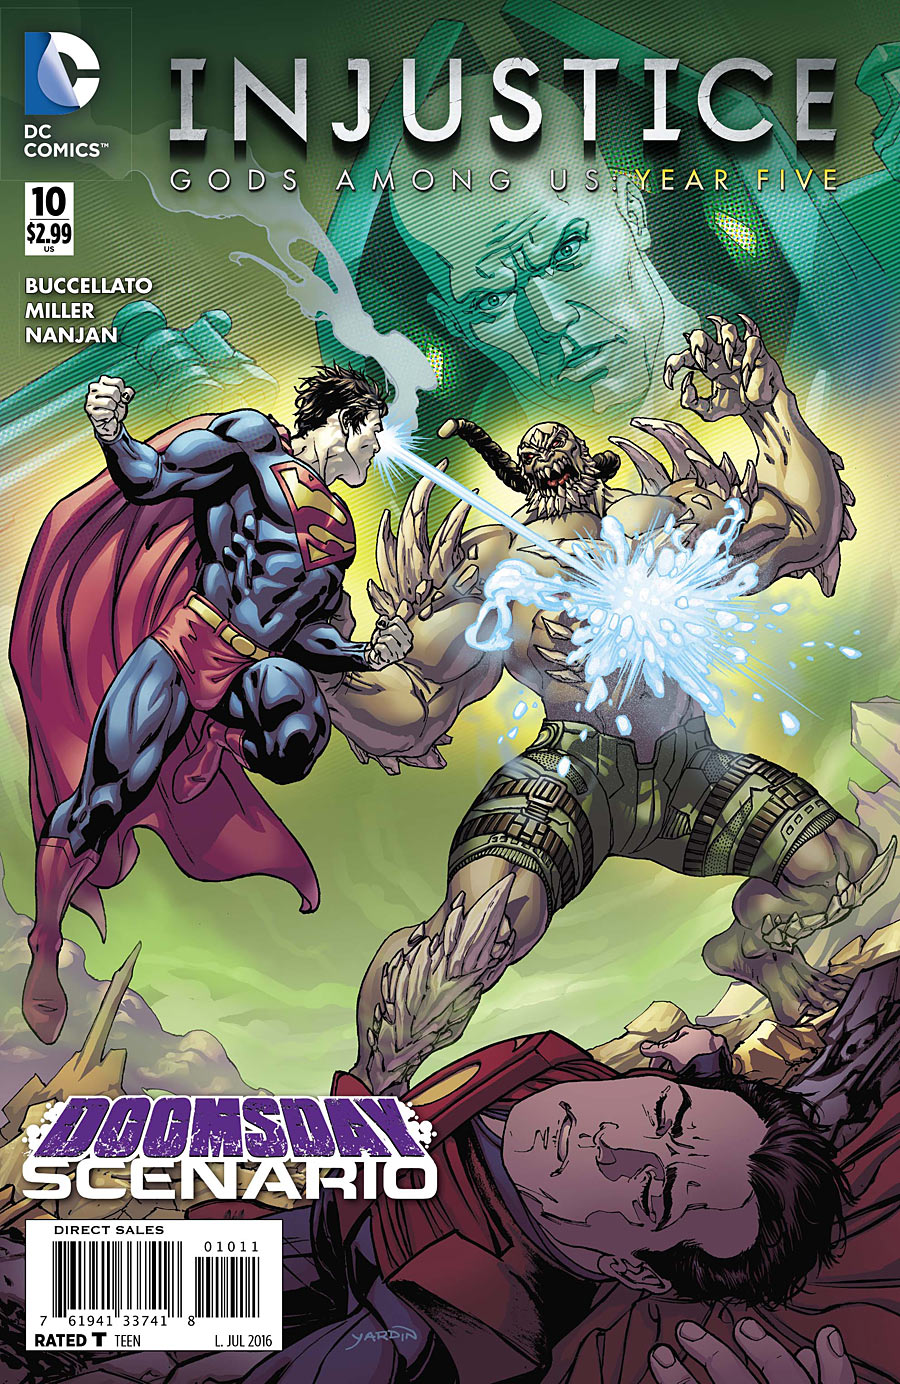 Injustice: Gods Among Us: Year Five Vol 1 10